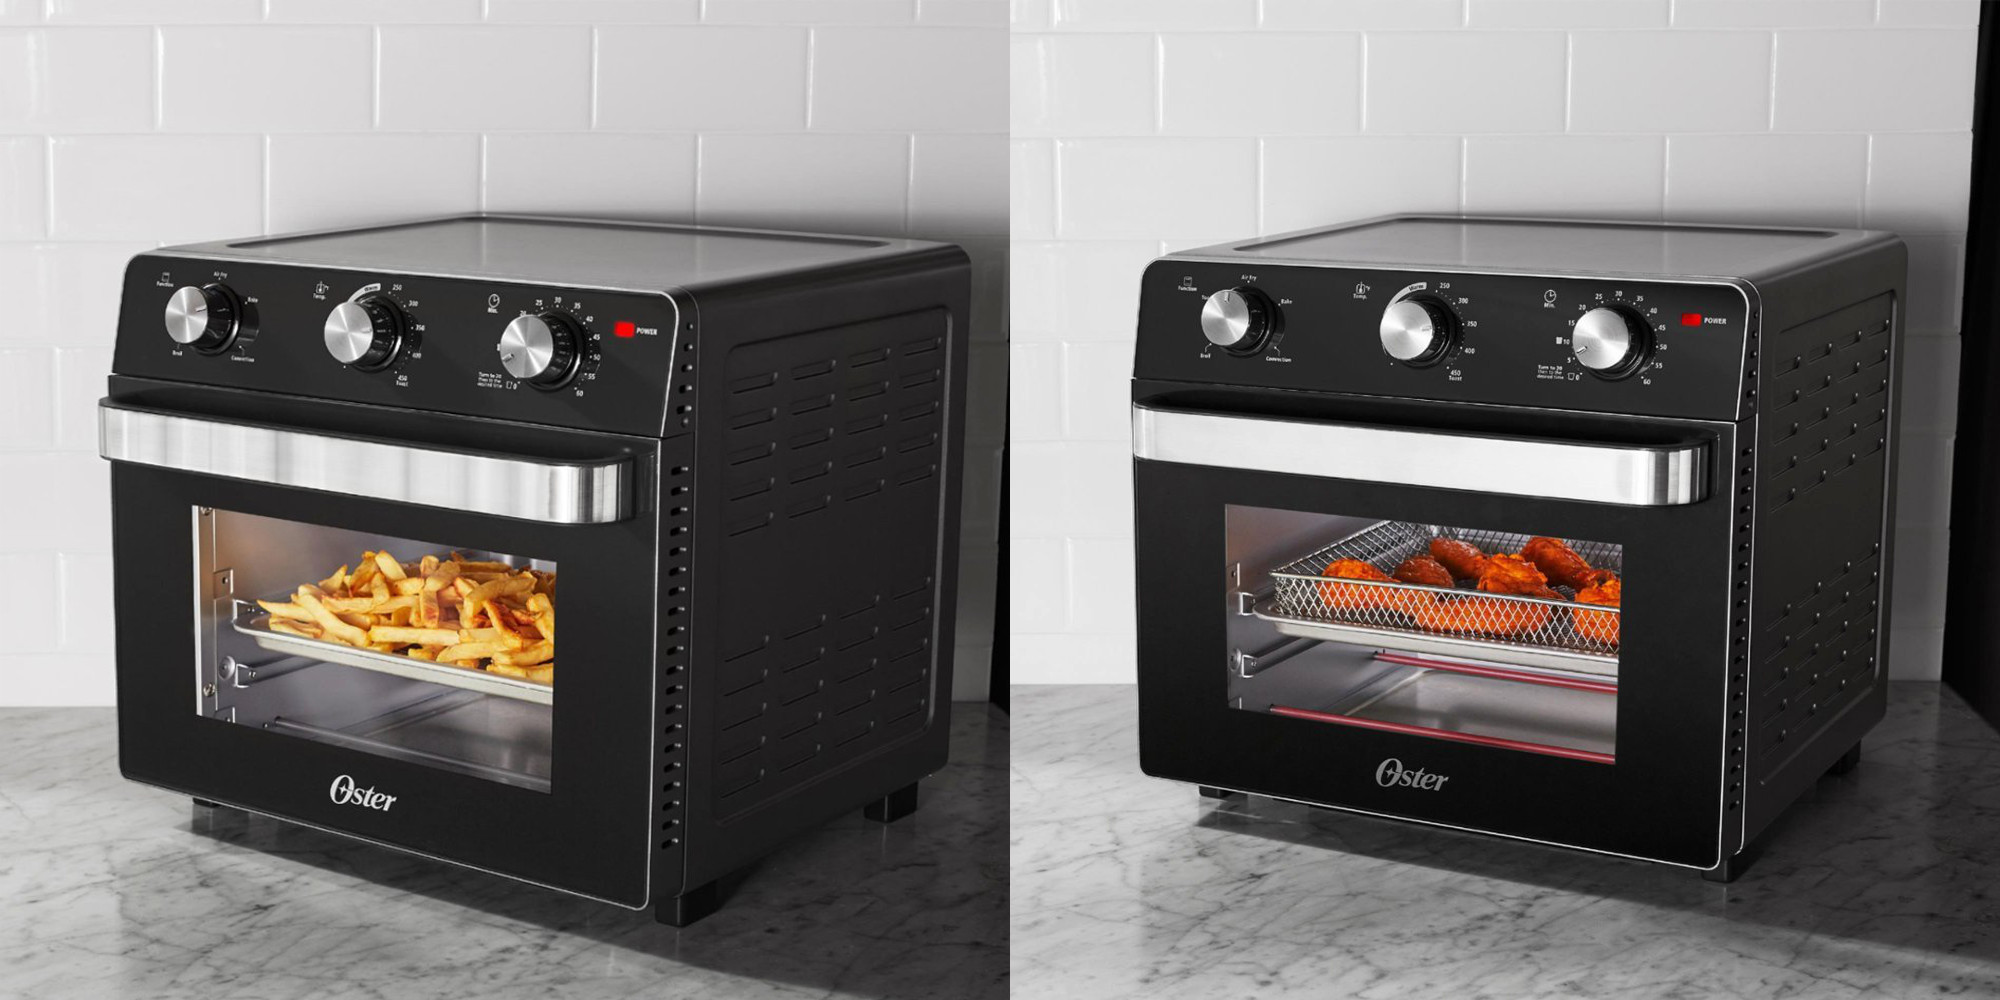 Oster's Toaster Oven Is An Air Fryer Too, Now $70 (Reg. Up